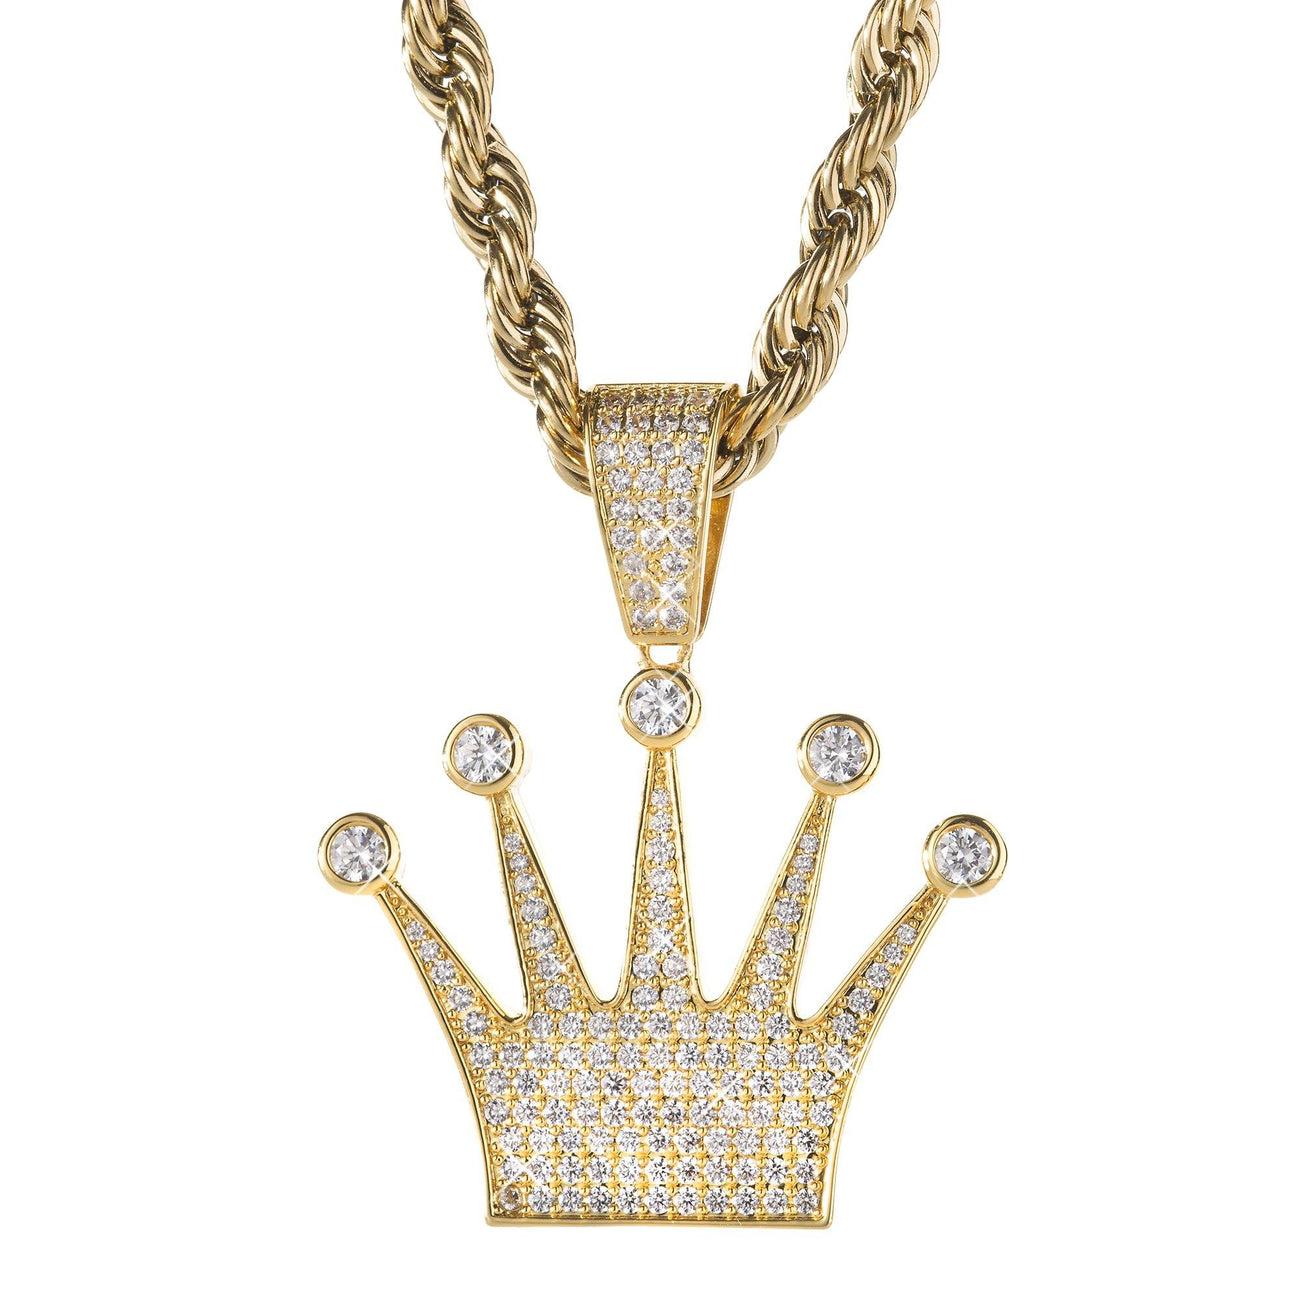 dp crown amazon necklace king gold lion tone com pendant rope micro chain